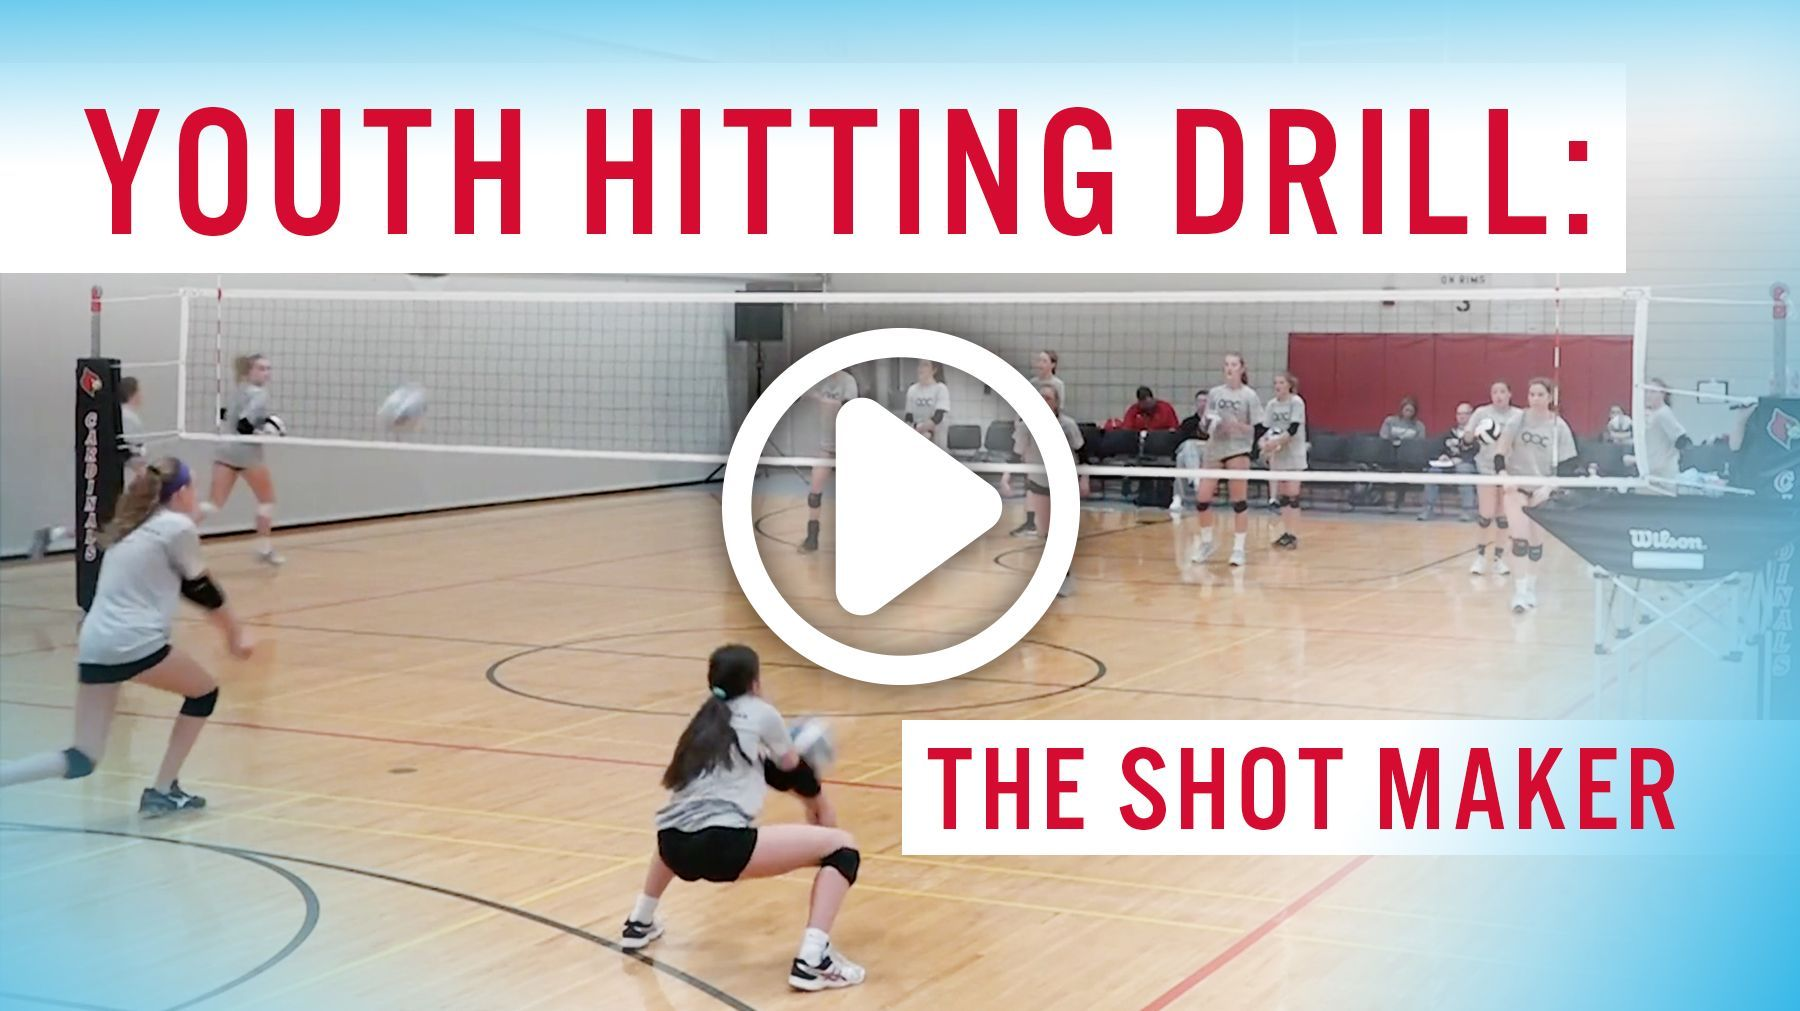 Youth Hitting Drill The Shot Maker The Art Of Coaching Volleyball Volleyball Drills Volleyball Practice Volleyball Skills